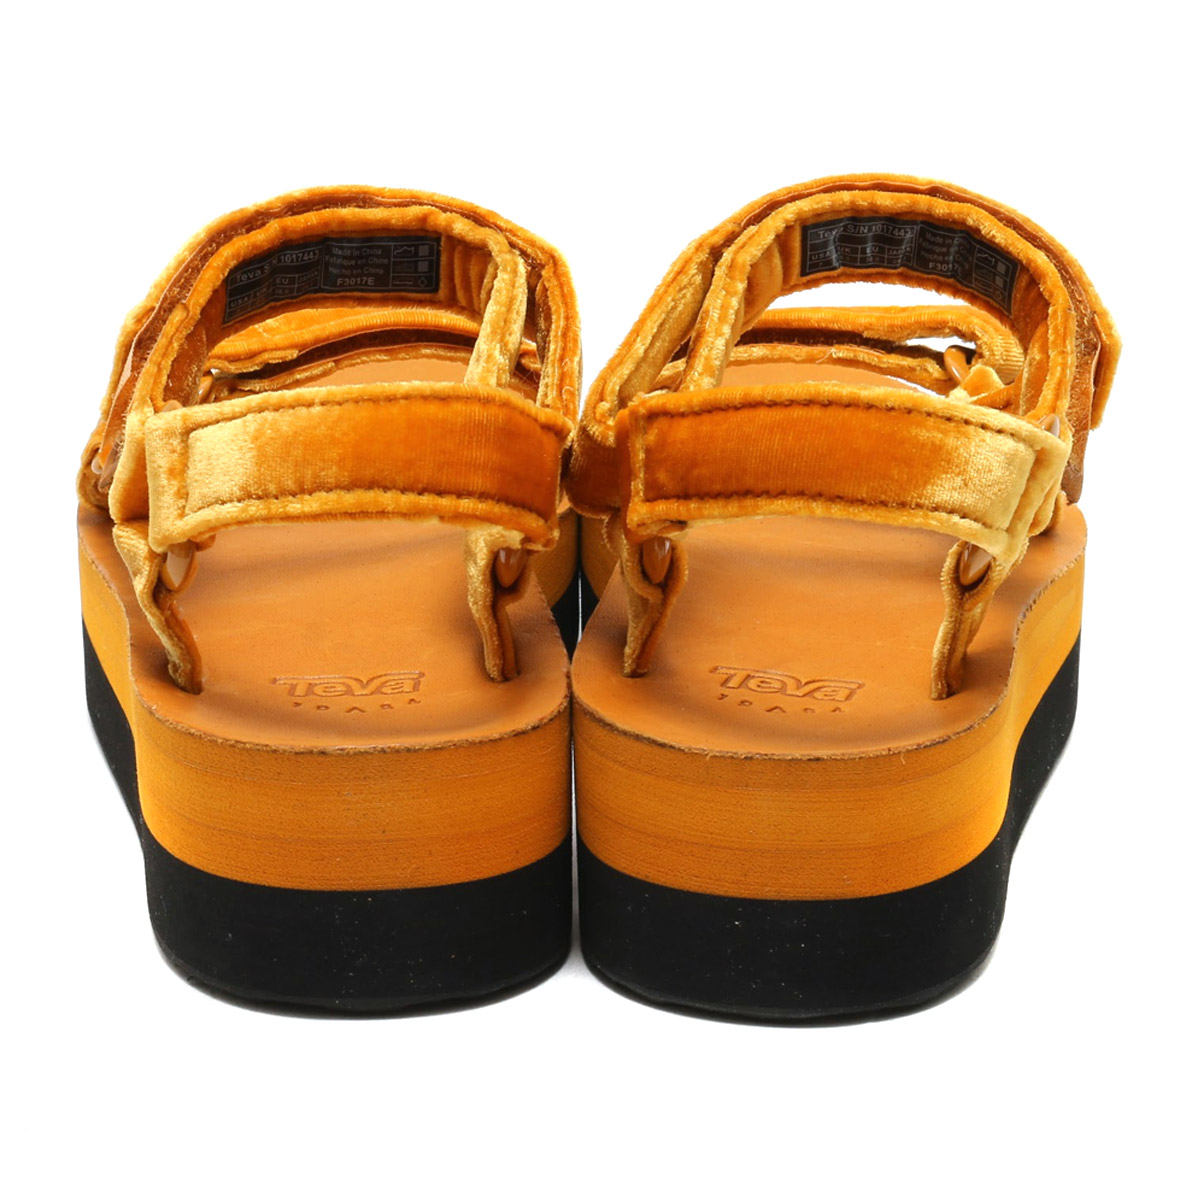 81d2cf0654 ... TEVA FLATFORM UNIVERSAL VELVET (Teva flat form older brother decorative  collar LebeL Bet) (